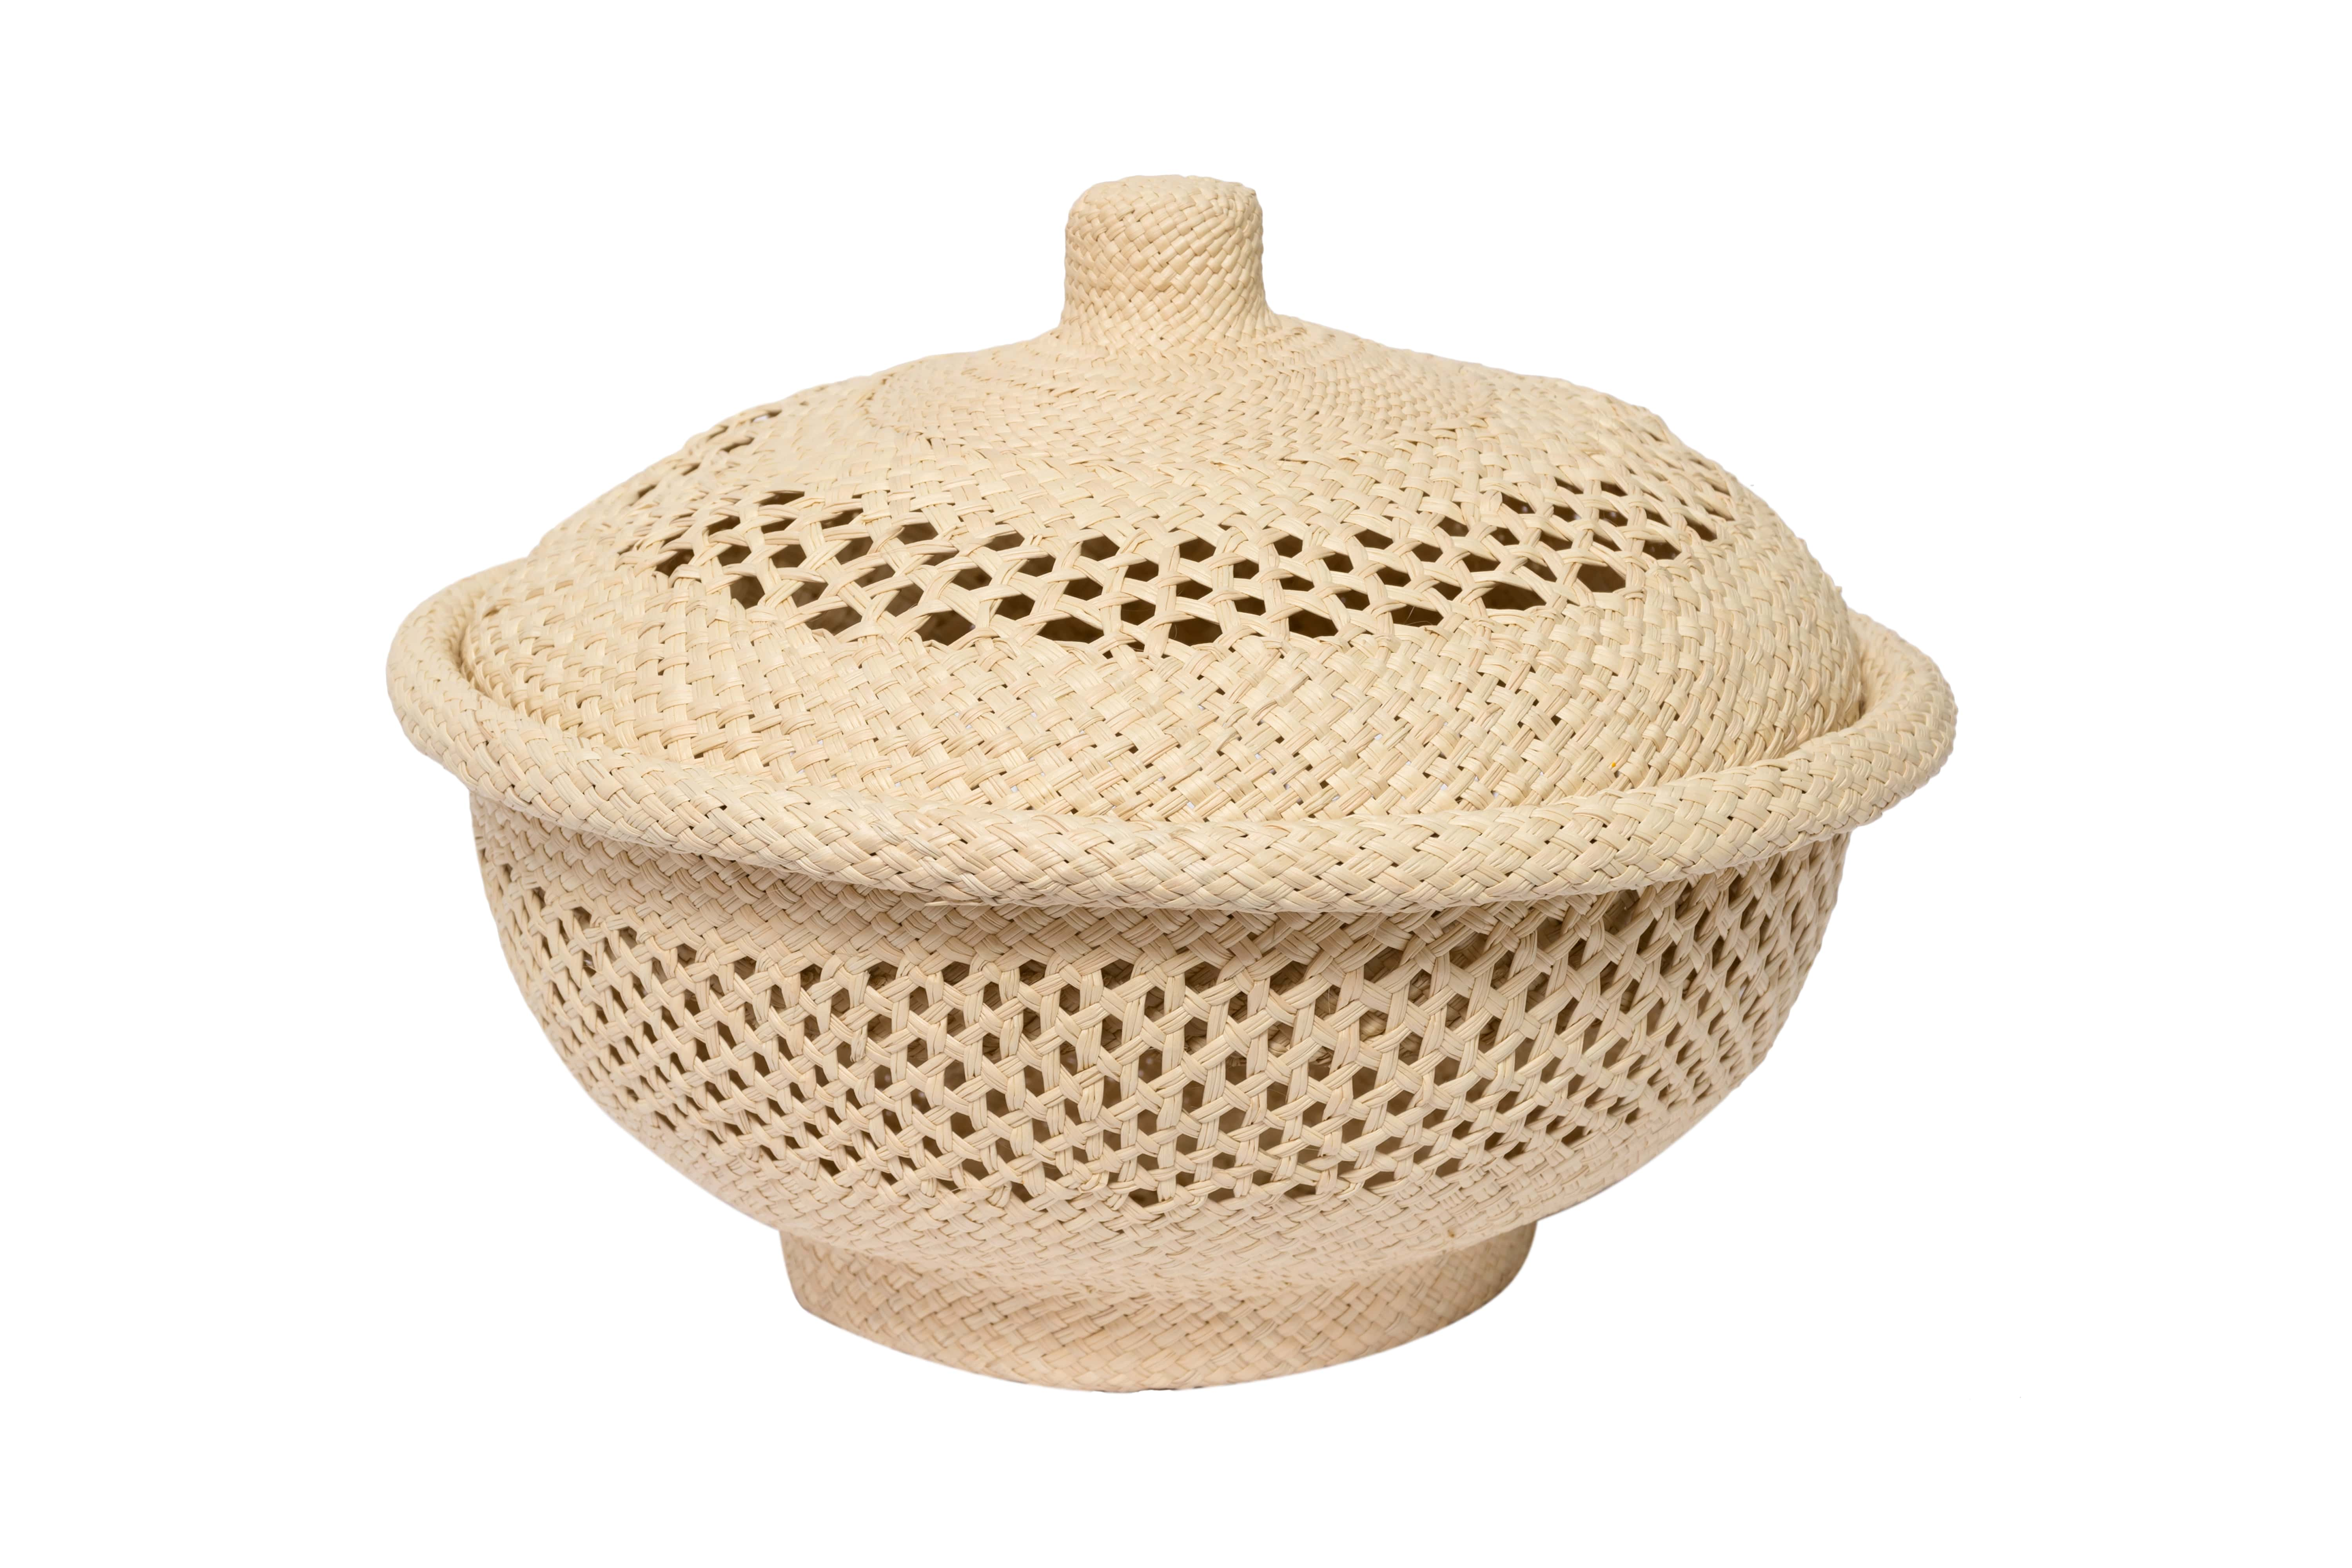 Breadbasket in iraca openwork design